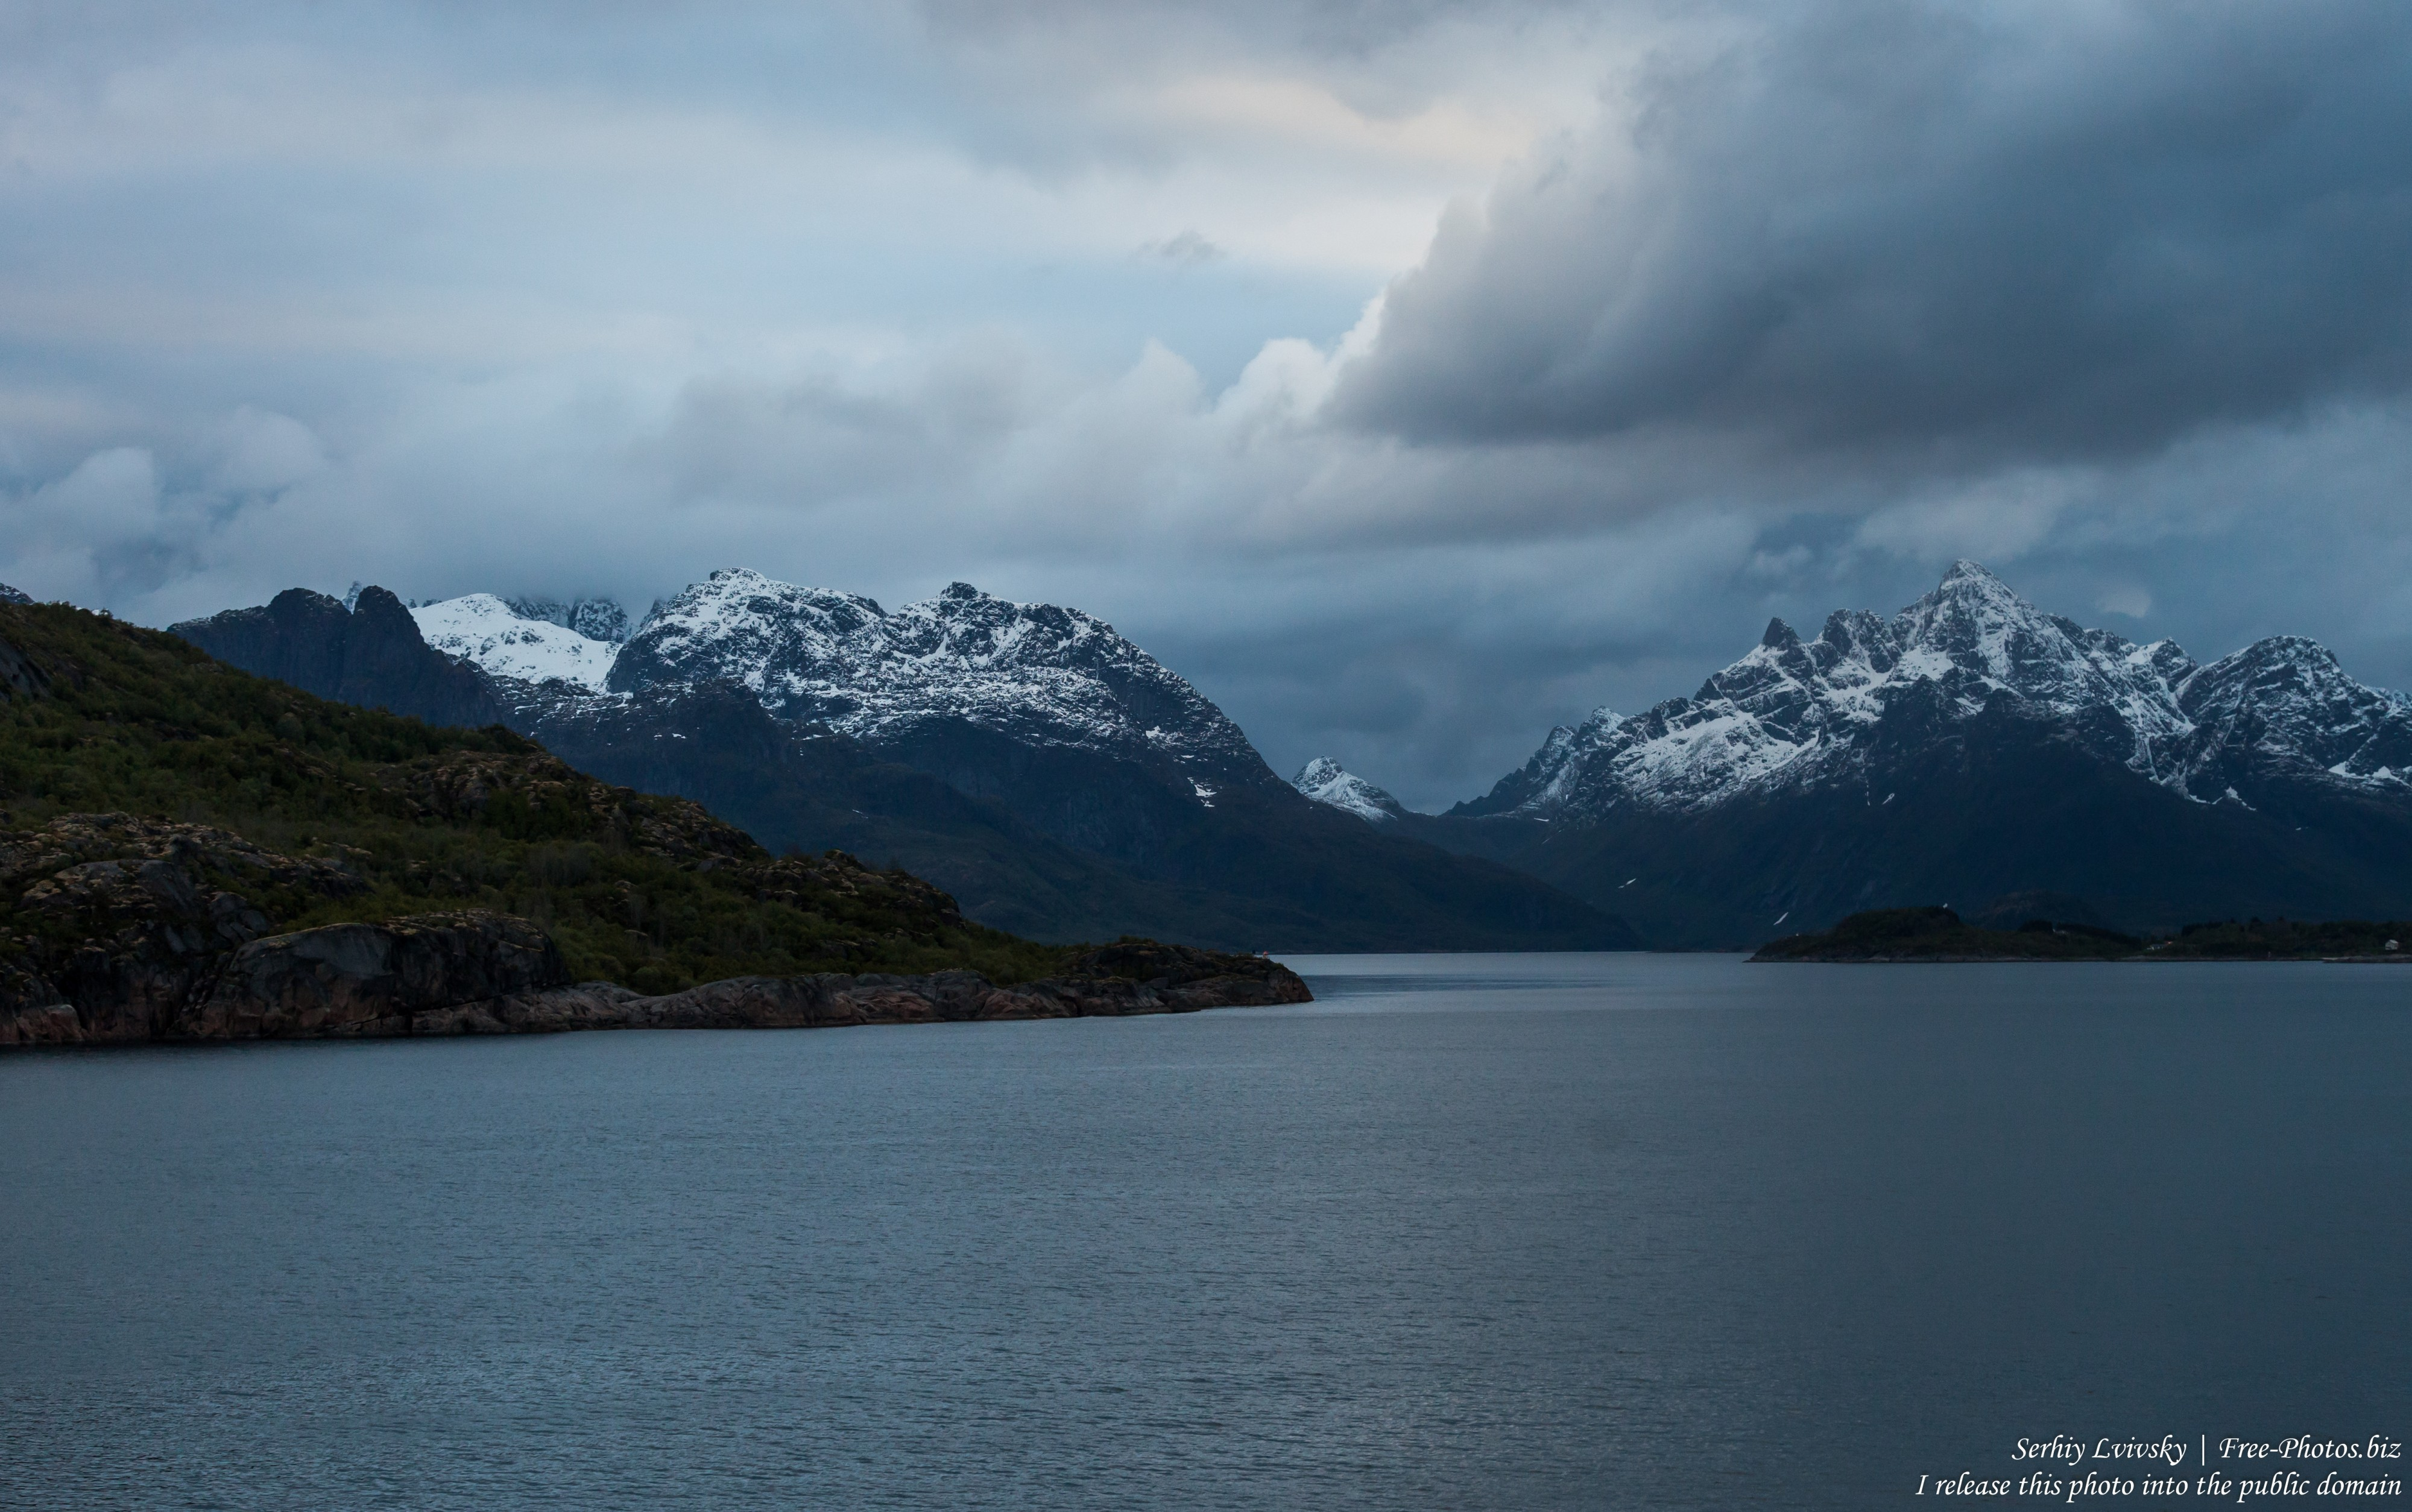 way from Svolvaer to Trollfjord, Norway, photographed in June 2018 by Serhiy Lvivsky, picture 5